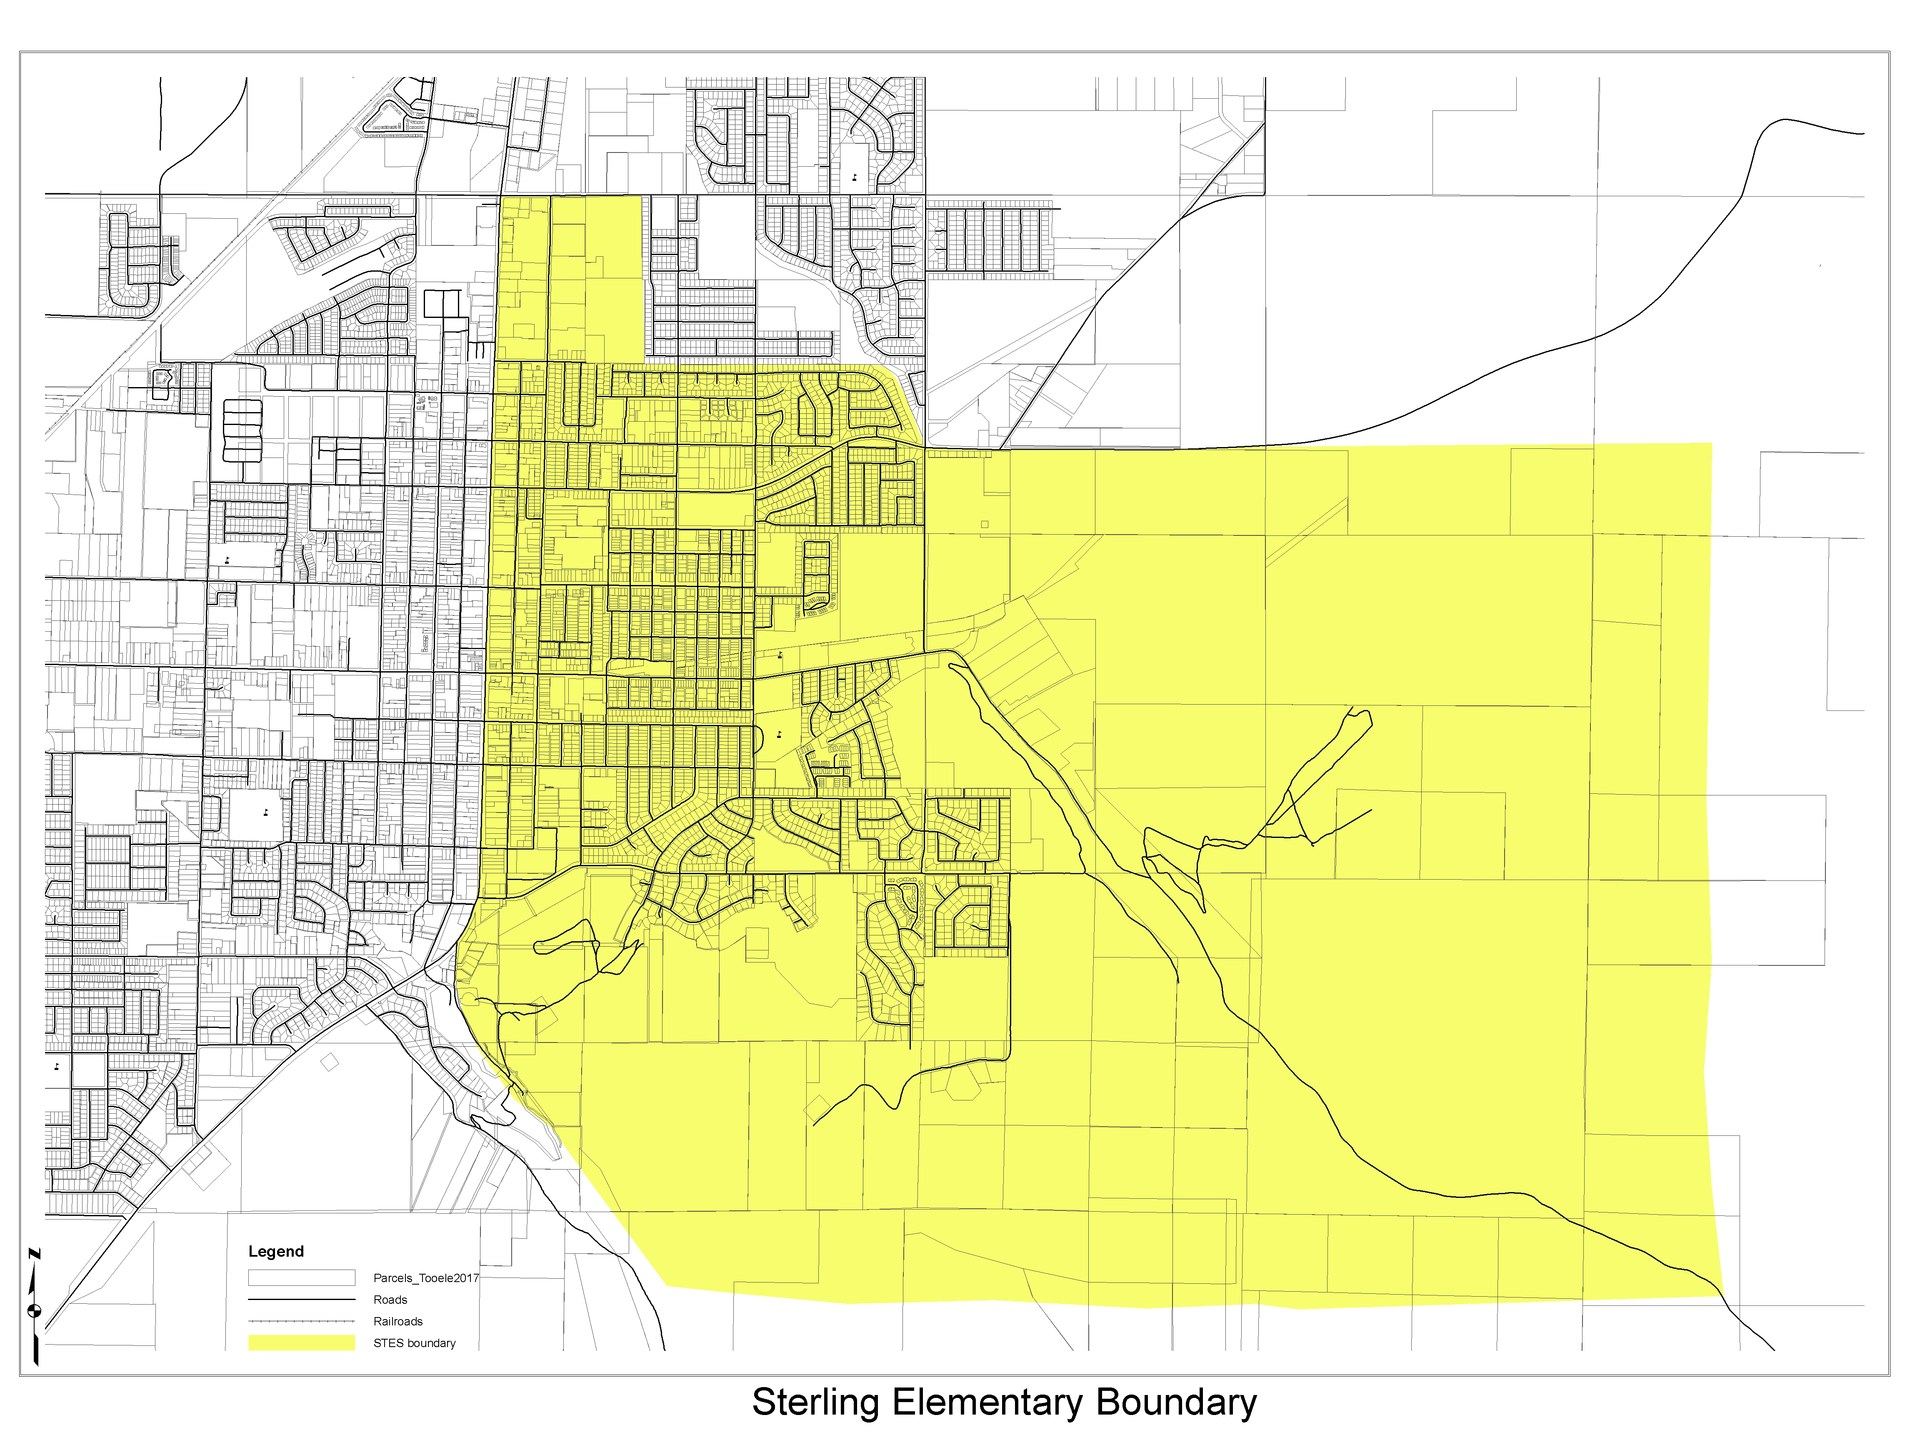 Sterling Elementary School boundary